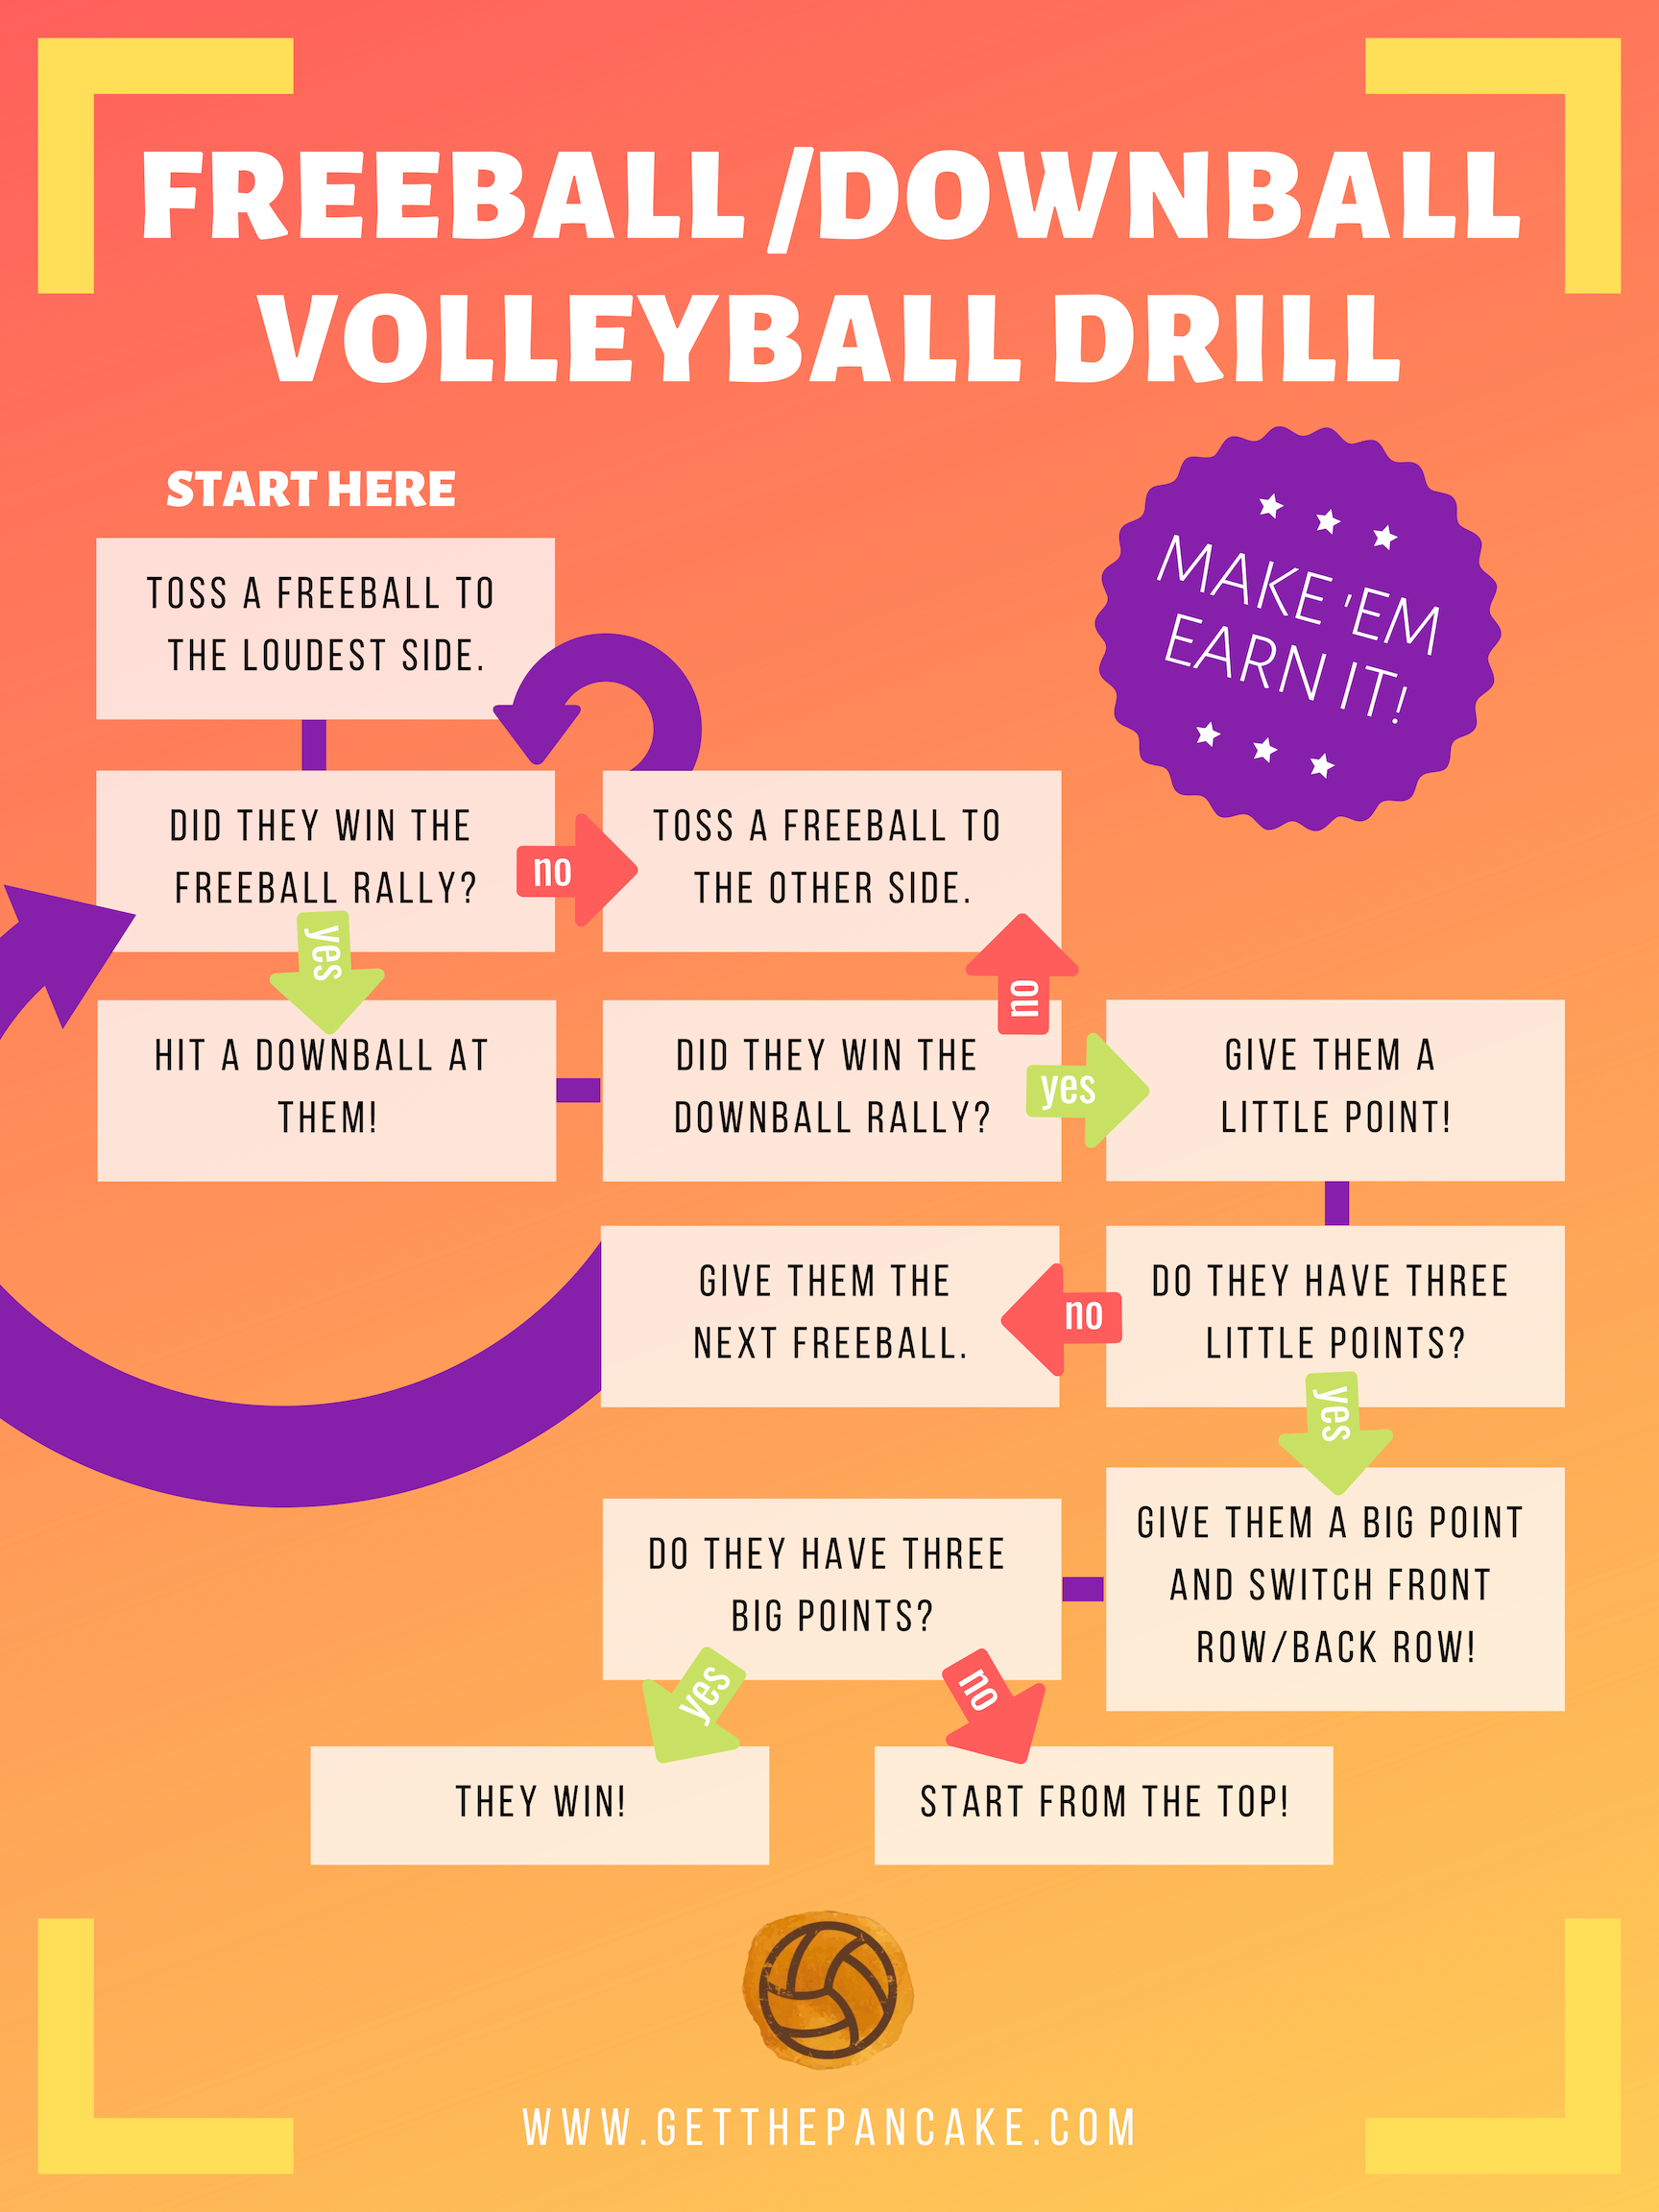 Freeball Downball Drill A Fast Paced Scrimmage Alternative To End Practice Volleyball Workouts Coaching Volleyball Volleyball Practice